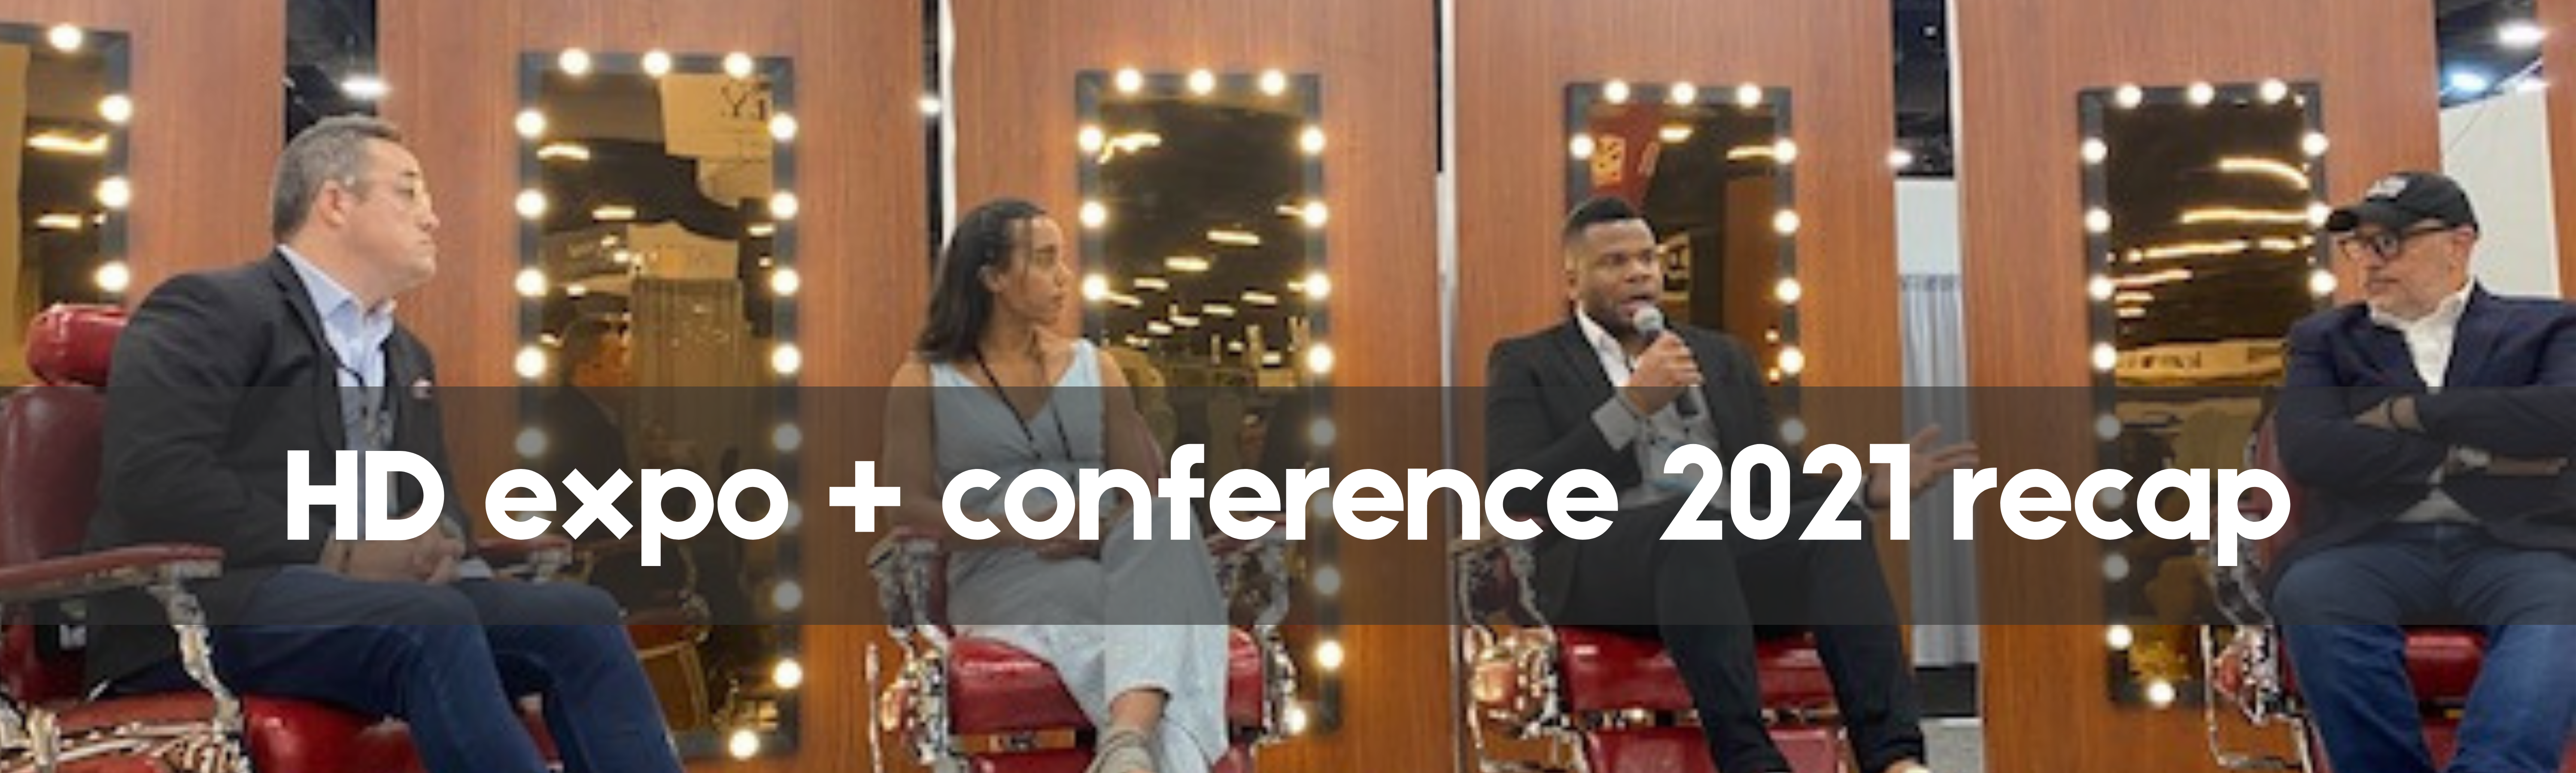 HD Expo + Conference 2021